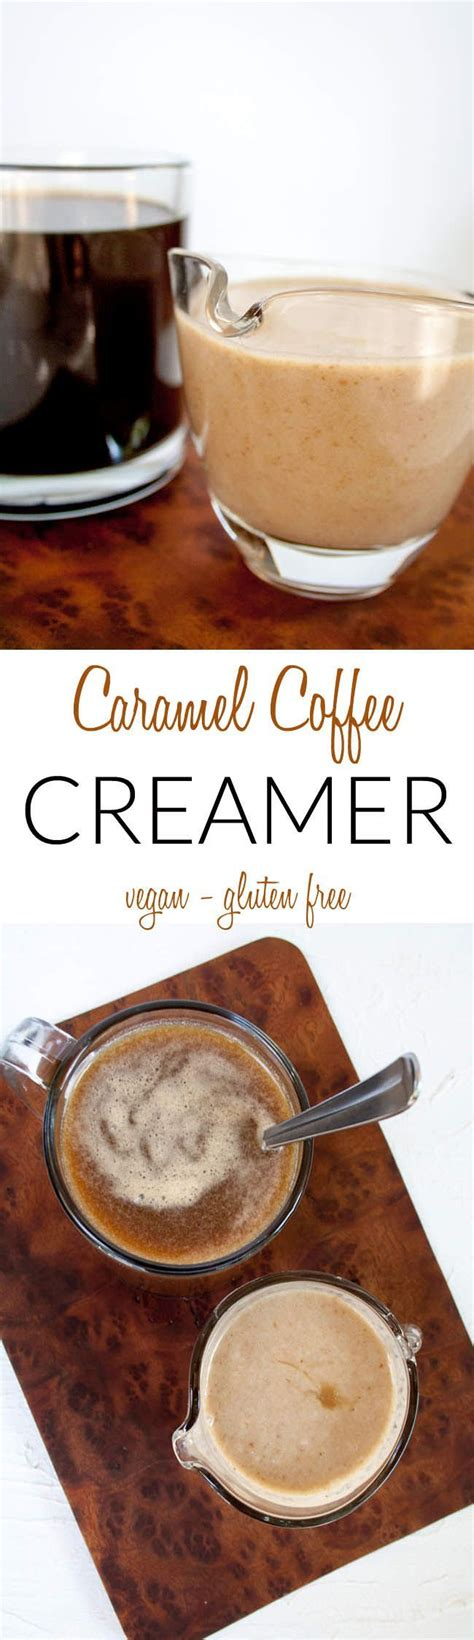 There are a few reasons why cashews perform better than any other nut or seed. Caramel Coffee Creamer (vegan, gluten free) - This ...